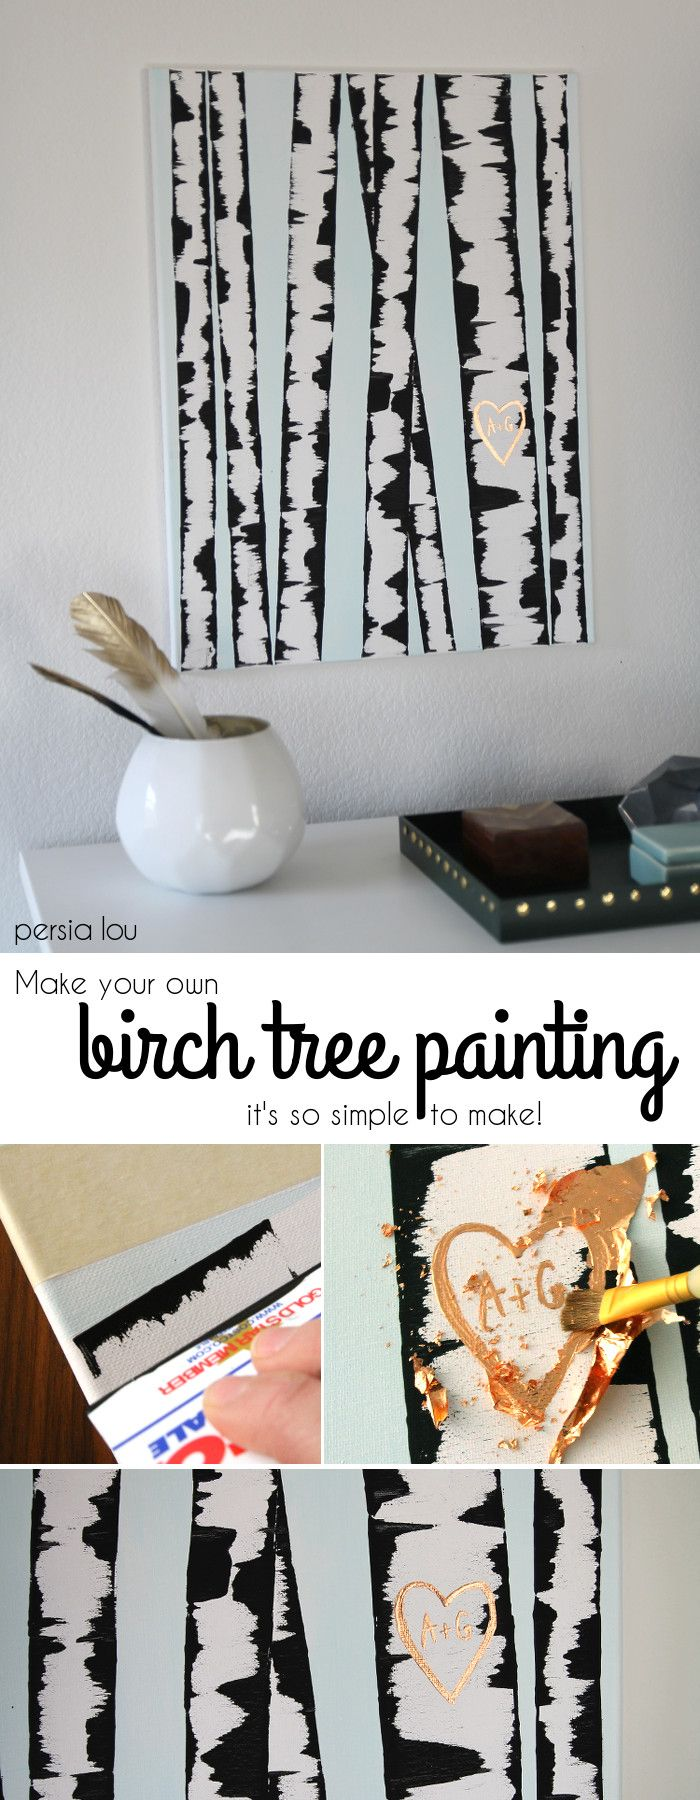 Design Diy Art Projects best 25 diy art ideas on pinterest projects easy make birch tree art